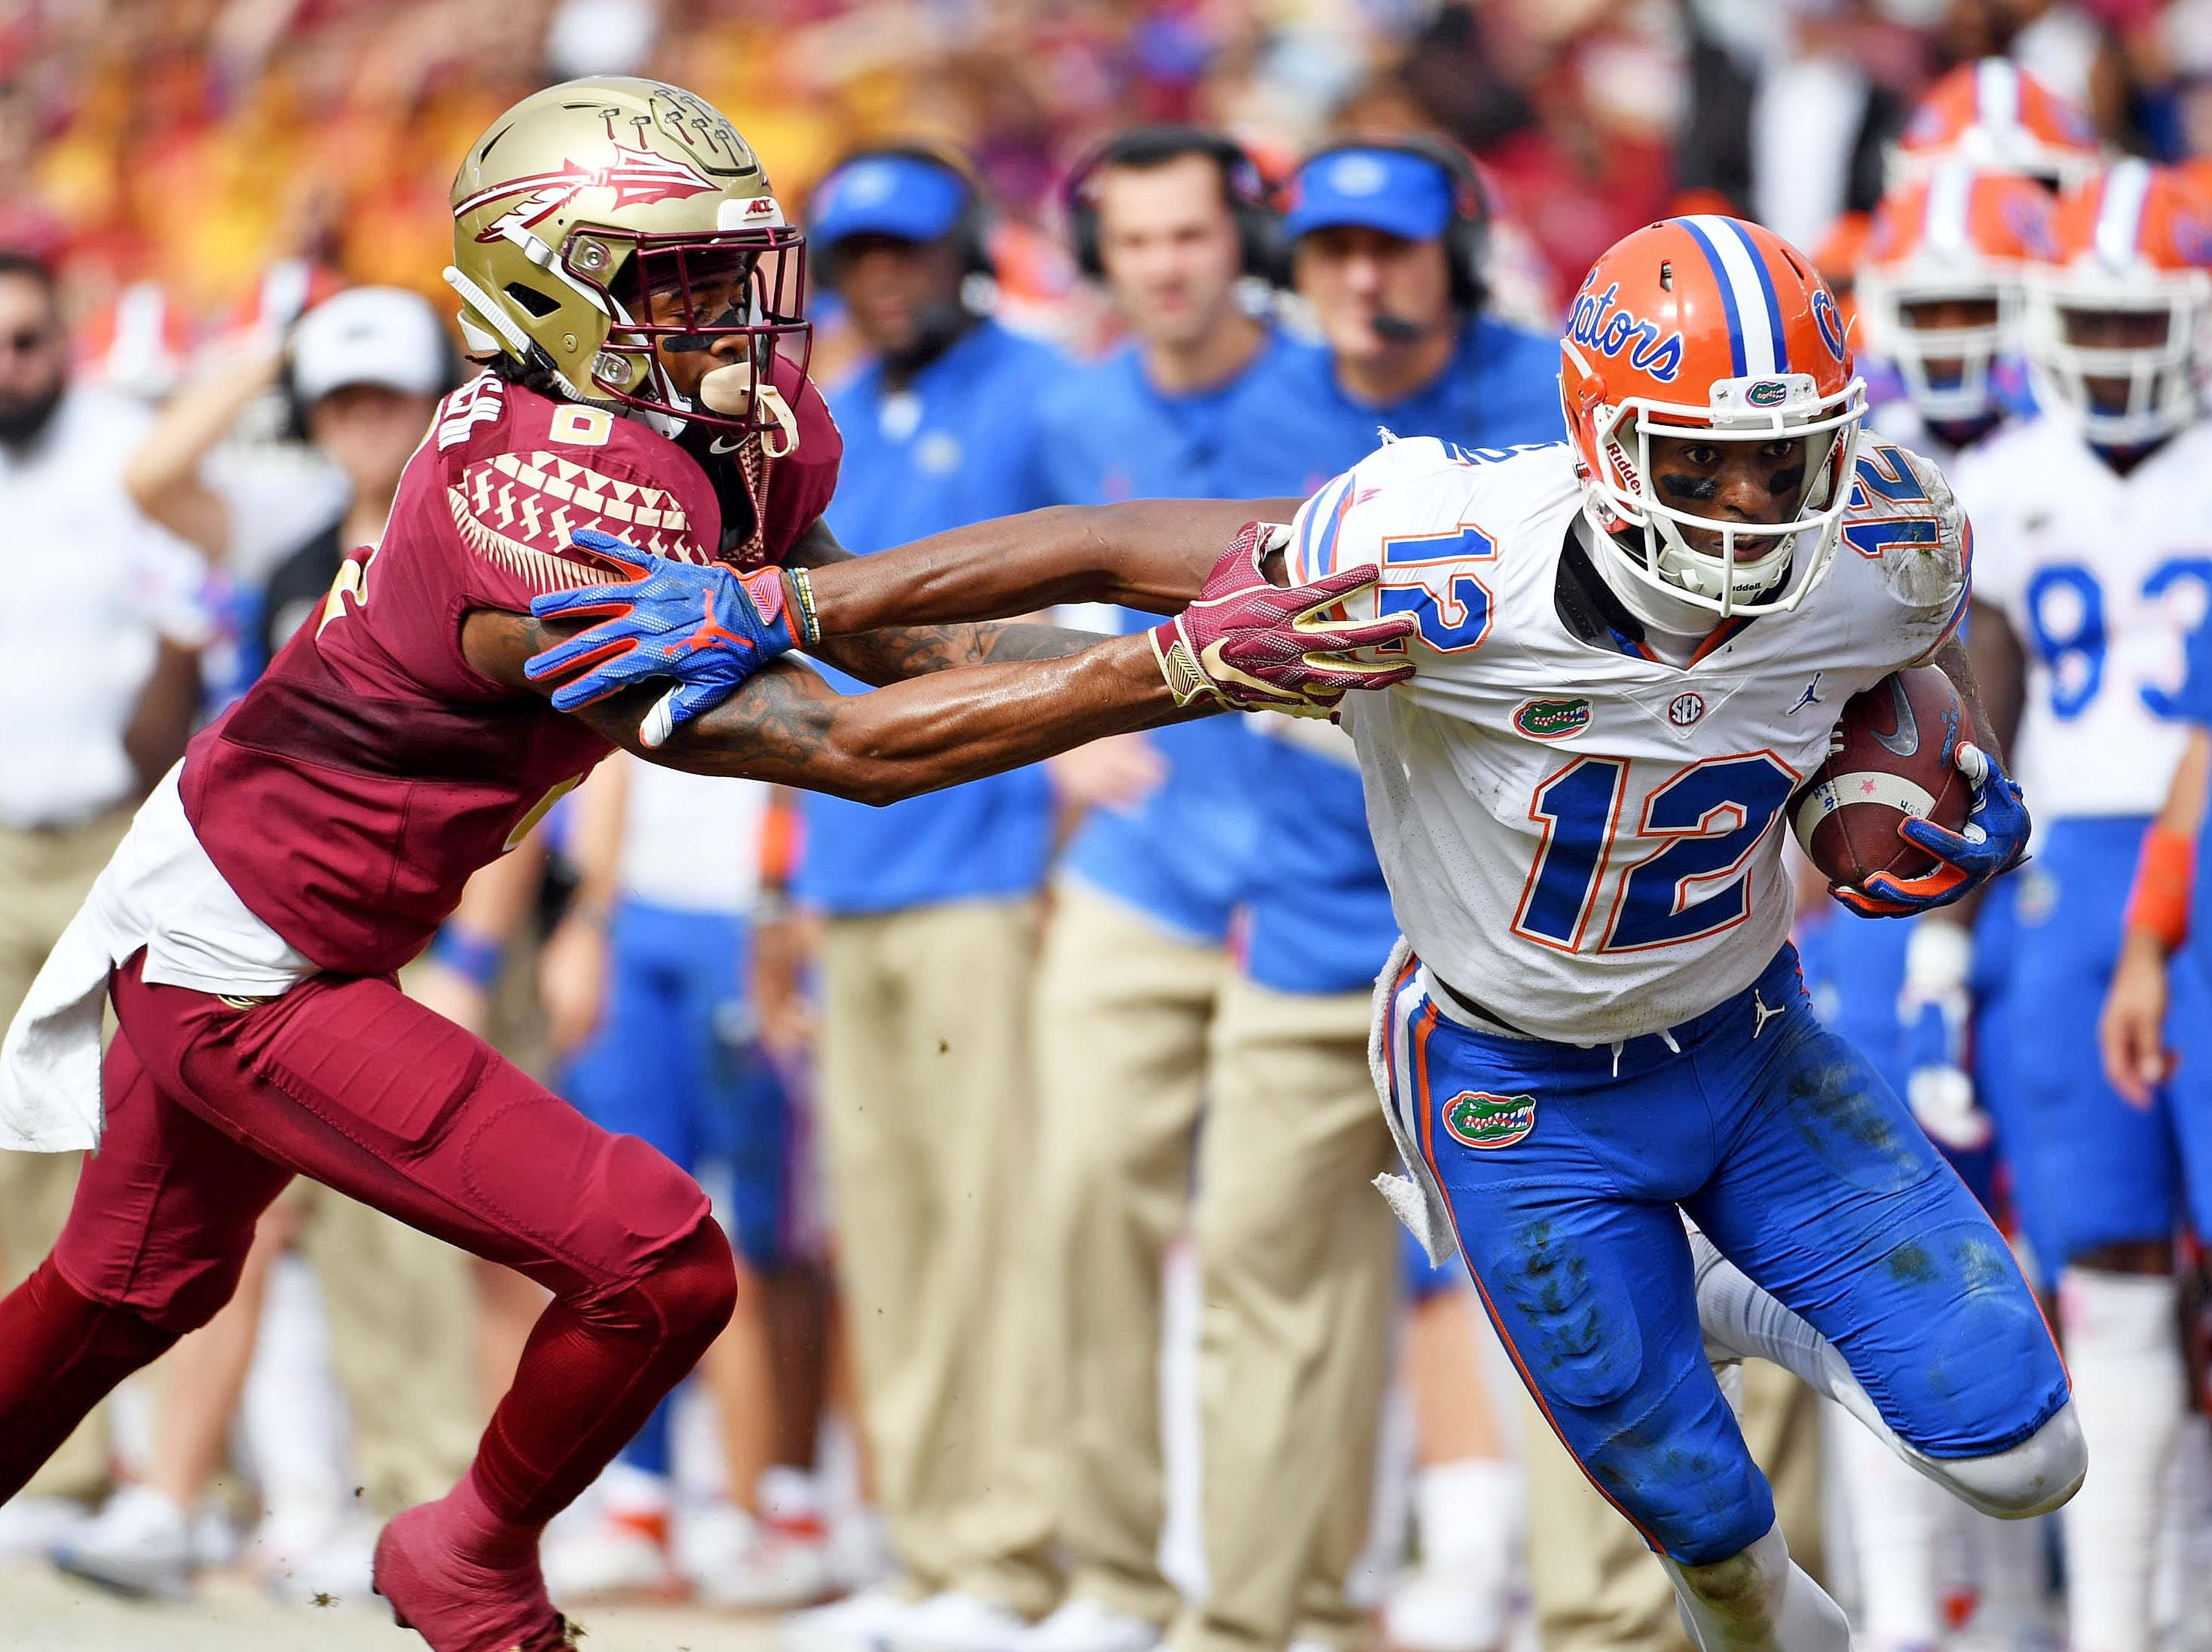 Nov 24, 2018; Tallahassee, FL, USA; Florida Gators wide receiver Van Jefferson (12) is defended by Florida State Seminoles defensive back Stanford Samuels III (8) during the first half at Doak Campbell Stadium. Mandatory Credit: Melina Myers-USA TODAY Sports